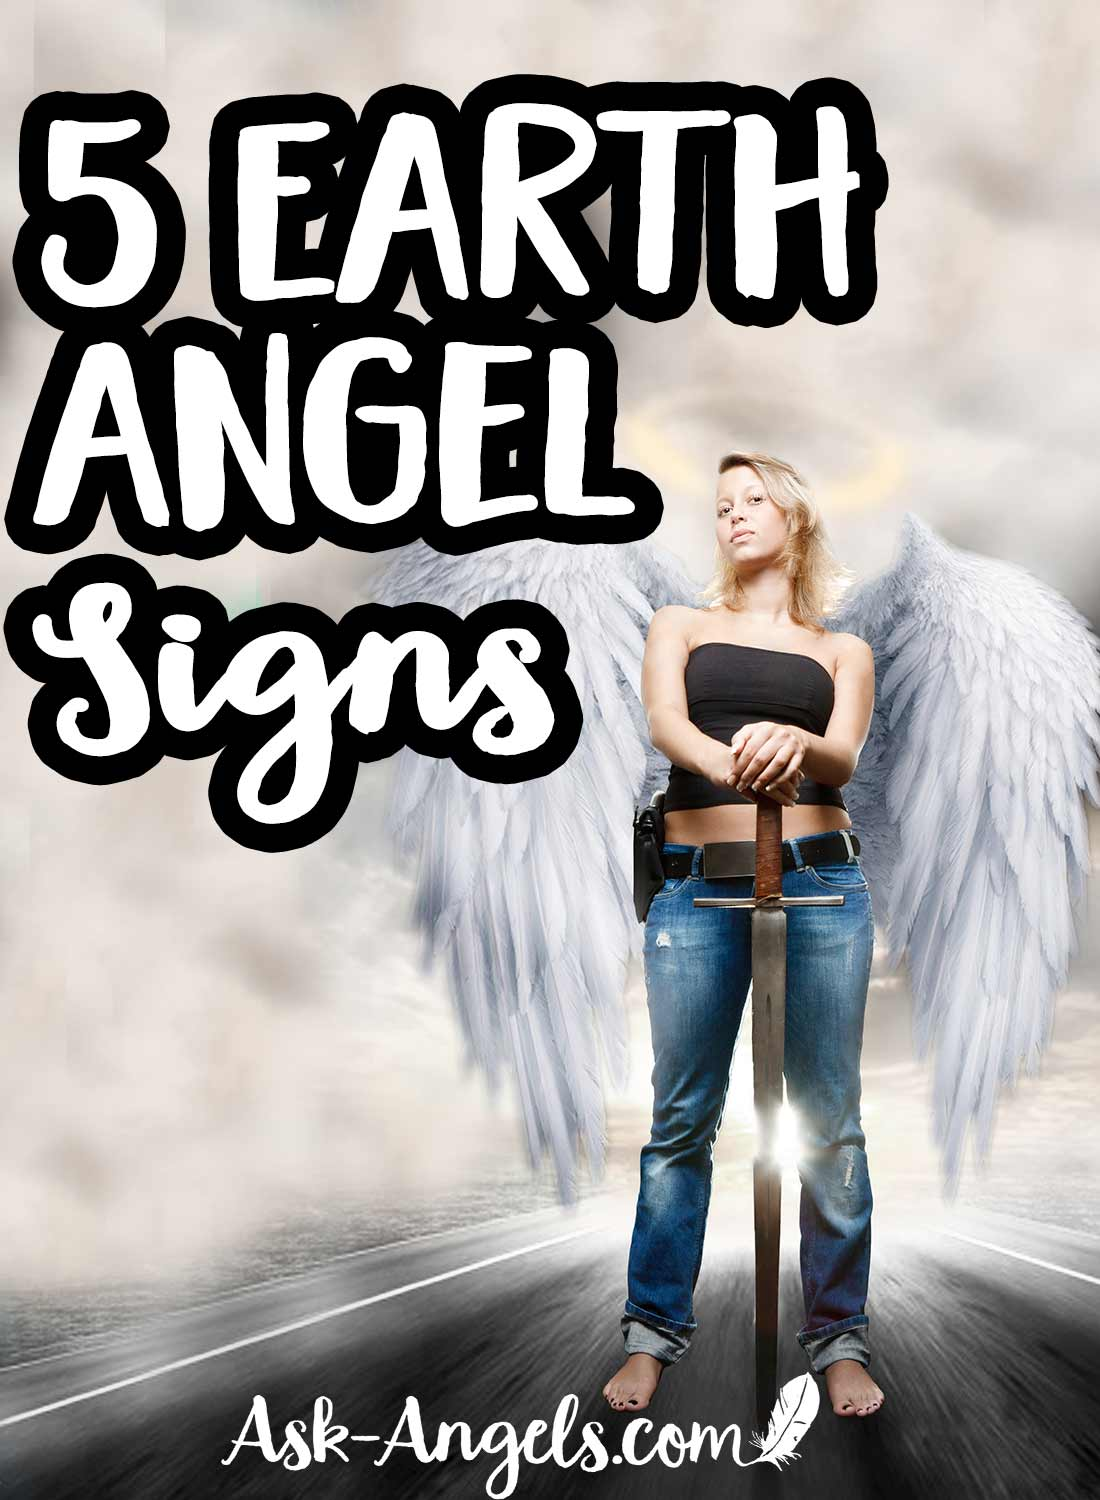 Earth Angel Signs